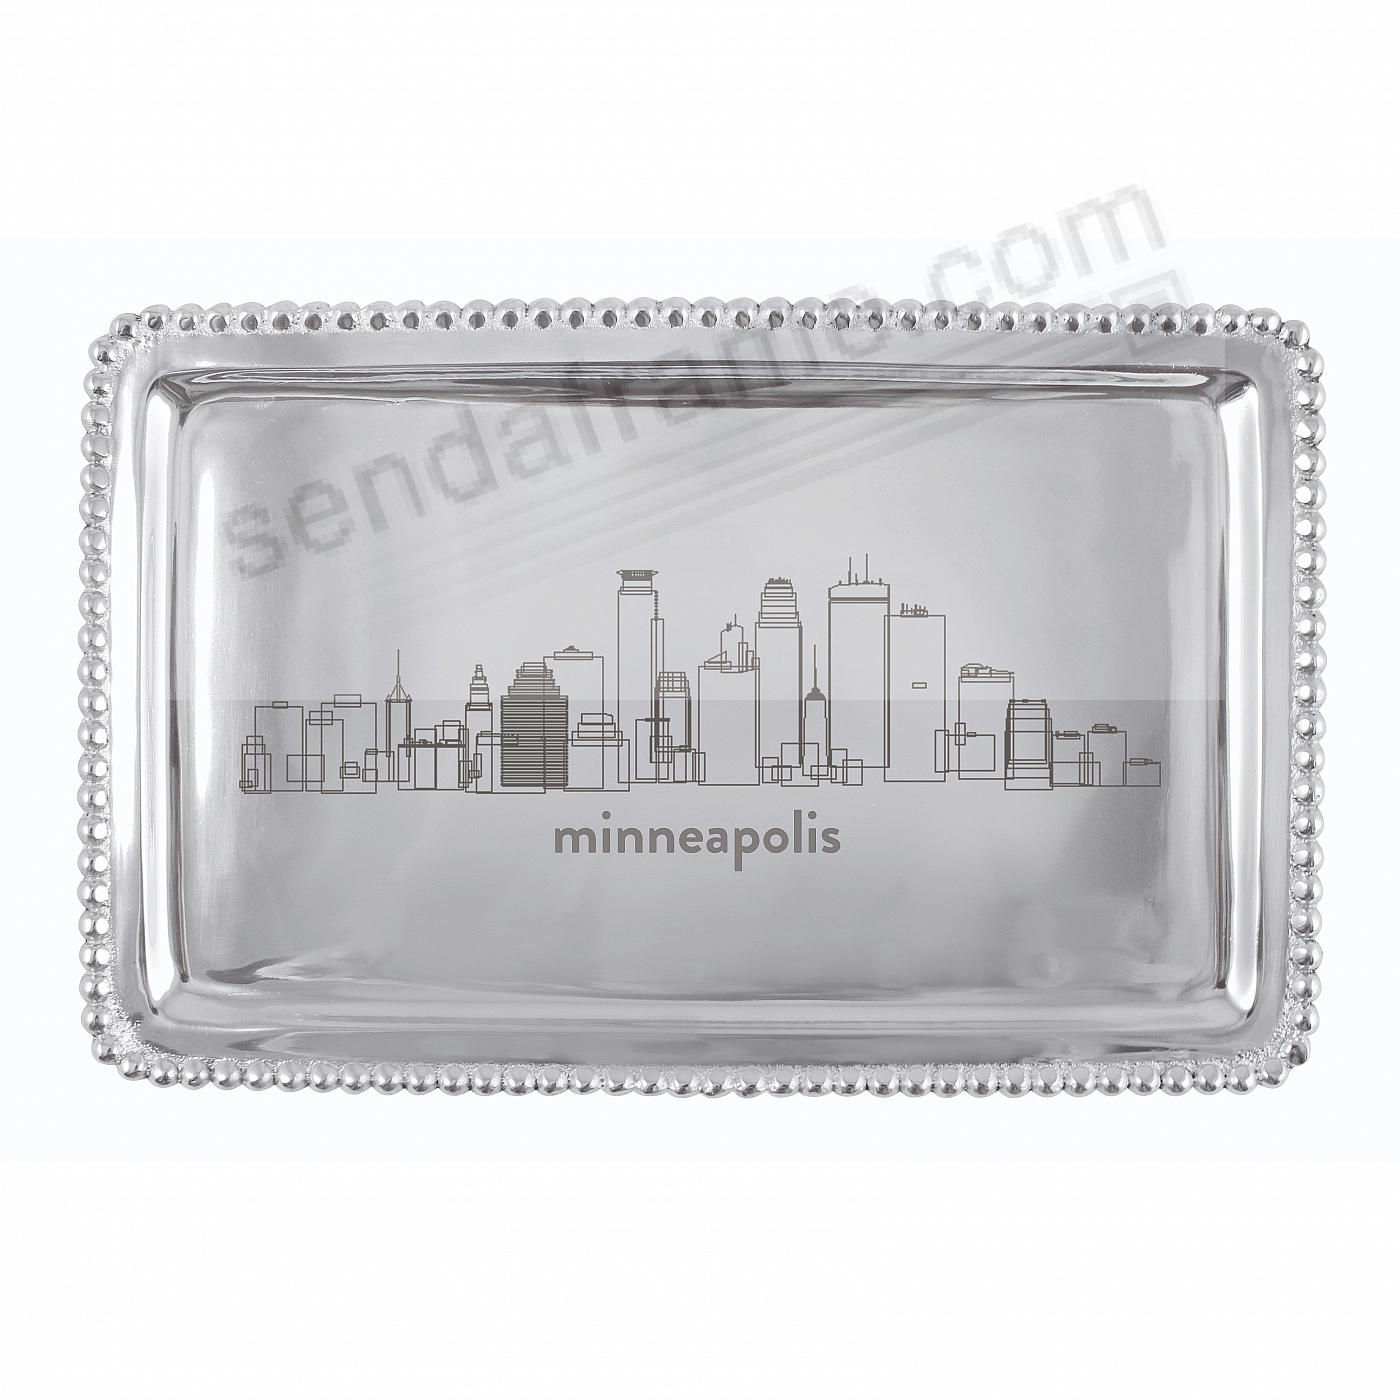 The MINNEAPOLIS-MN CITYSCAPE BEADED BUFFET TRAY crafted by Mariposa®